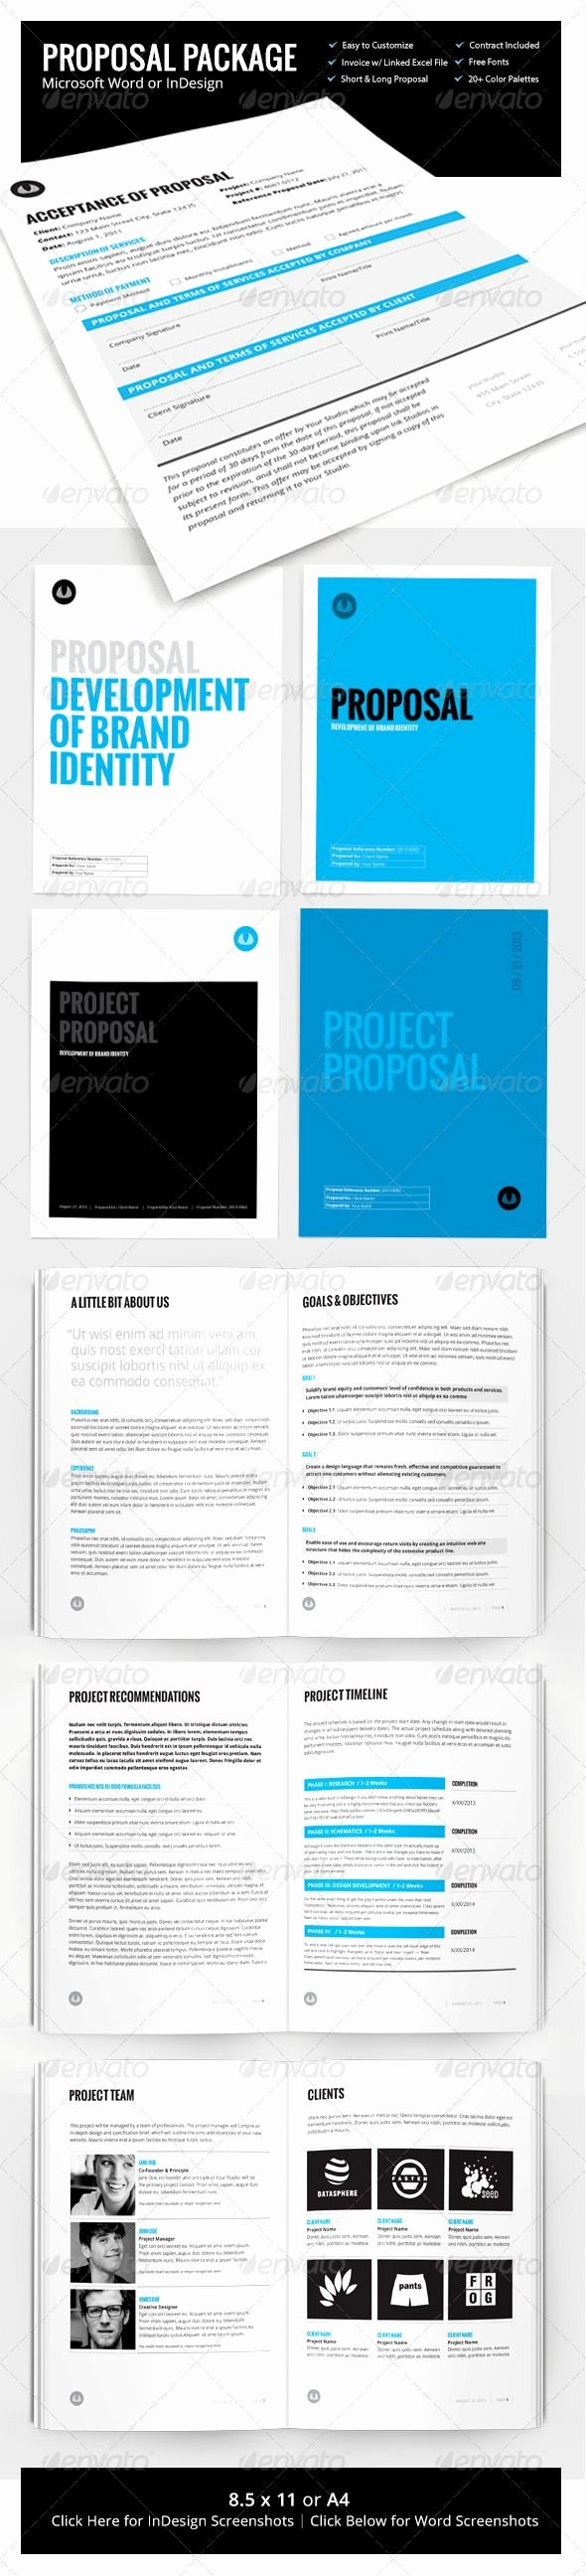 Microsoft Office Proposal Template Best Of Business Proposal Template W Resume & Invoice 60 Pages